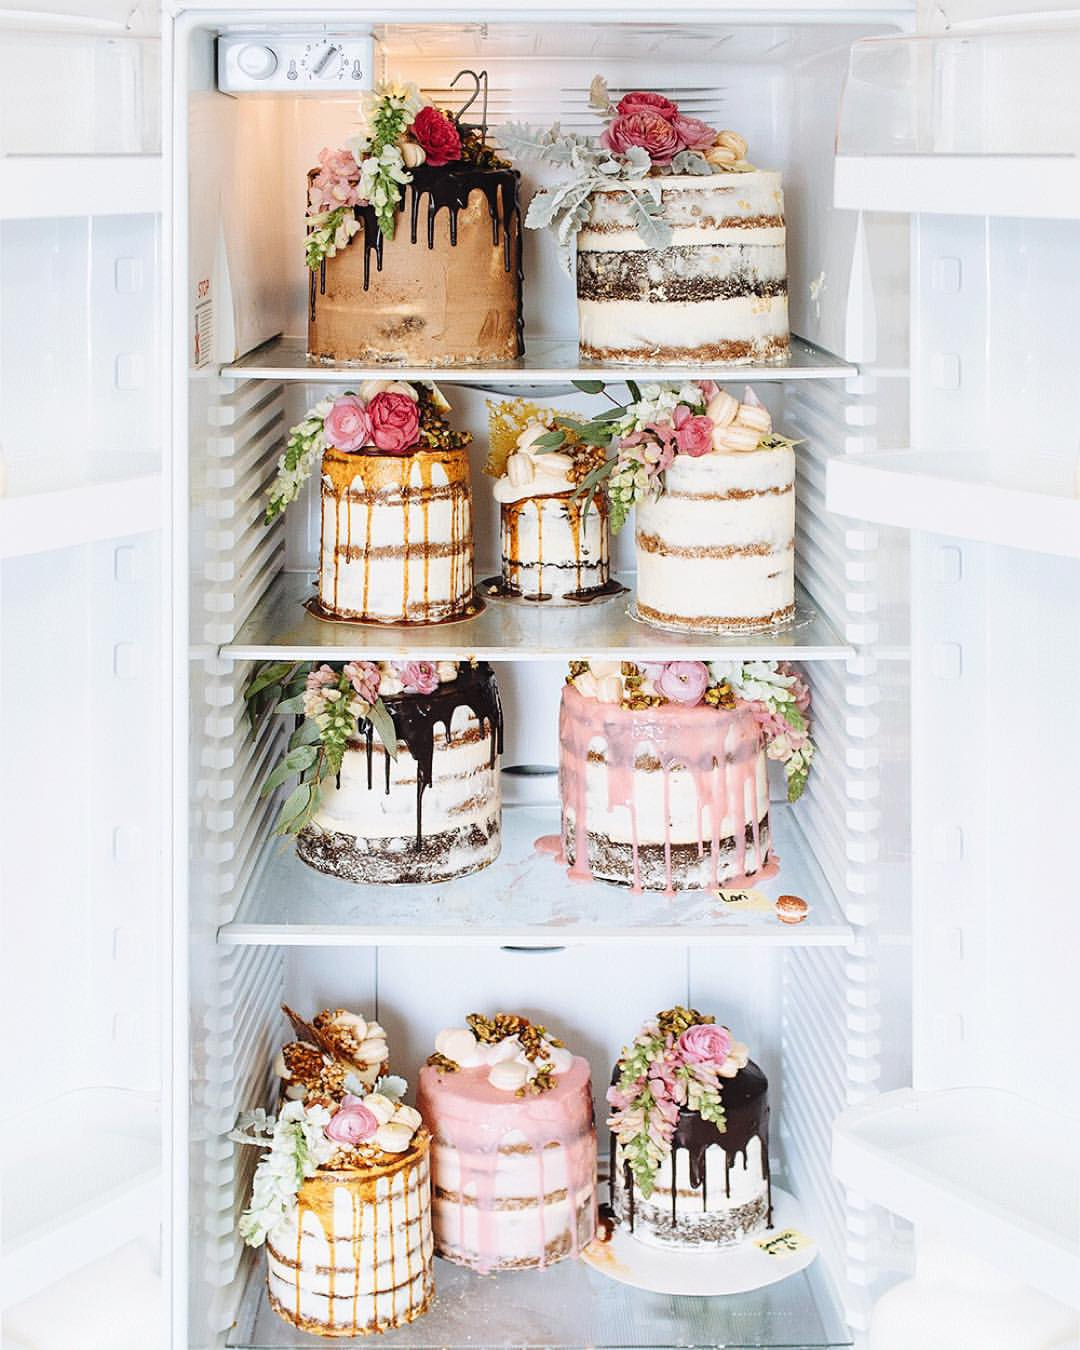 tomecakes-wedding-cakes